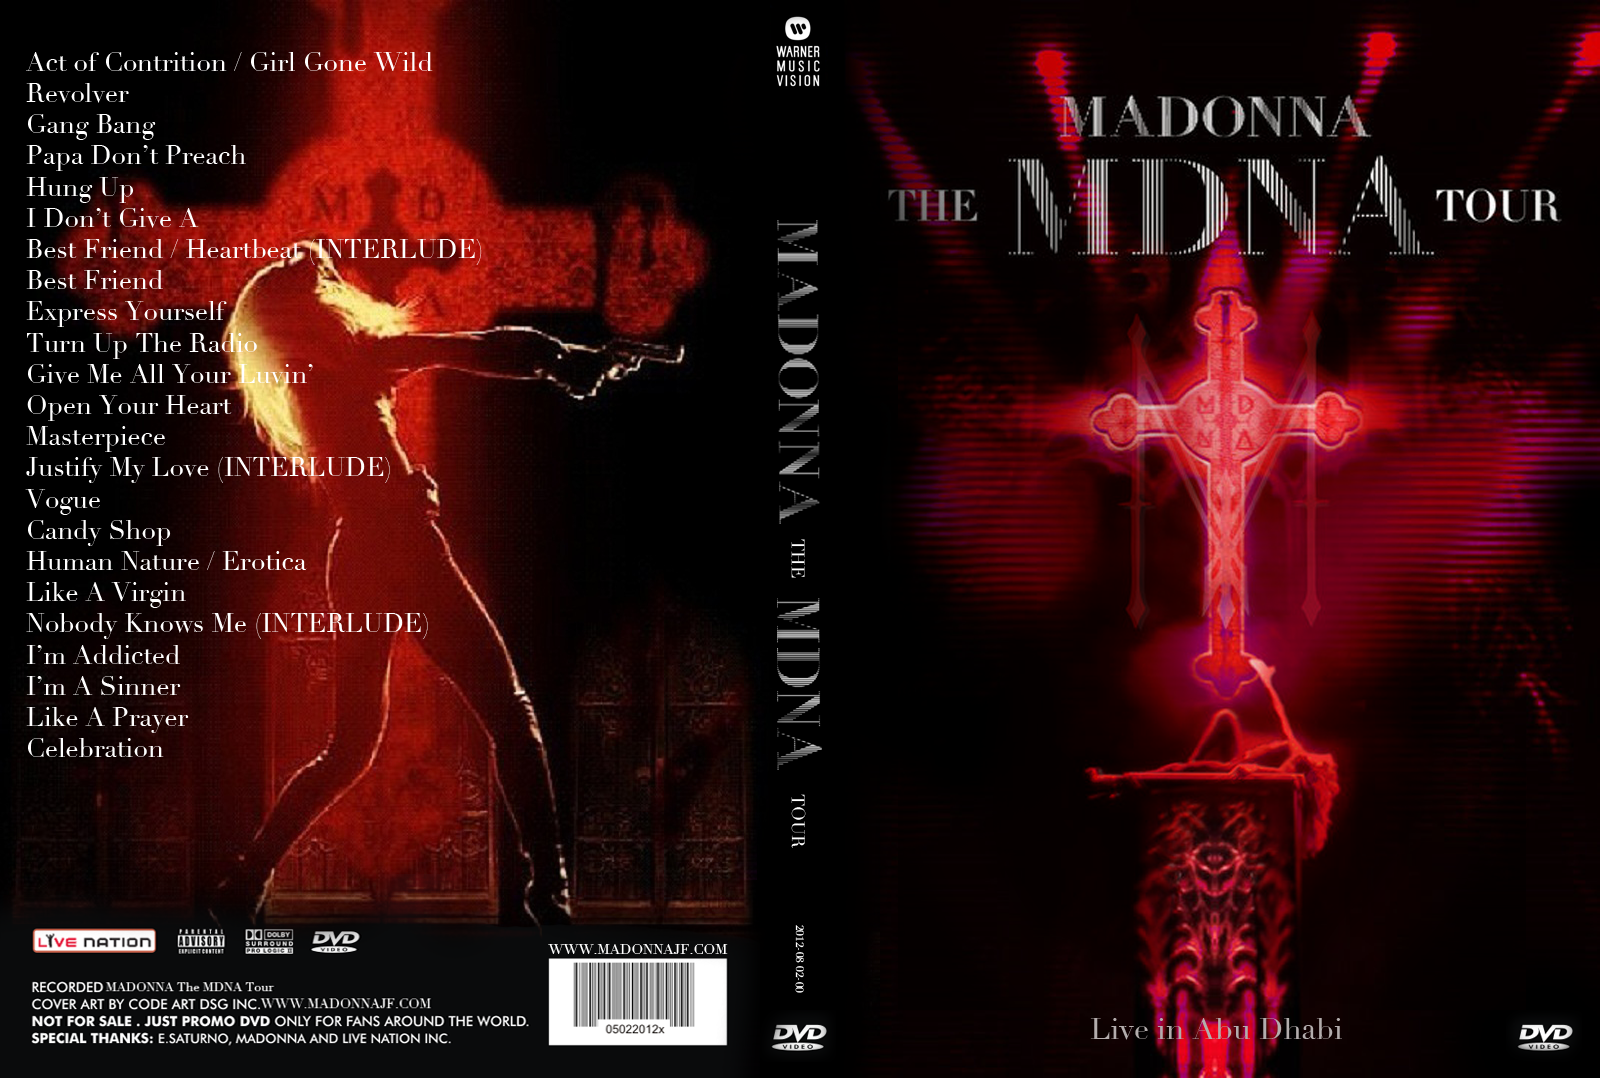 Mdna Tour Dvd Download